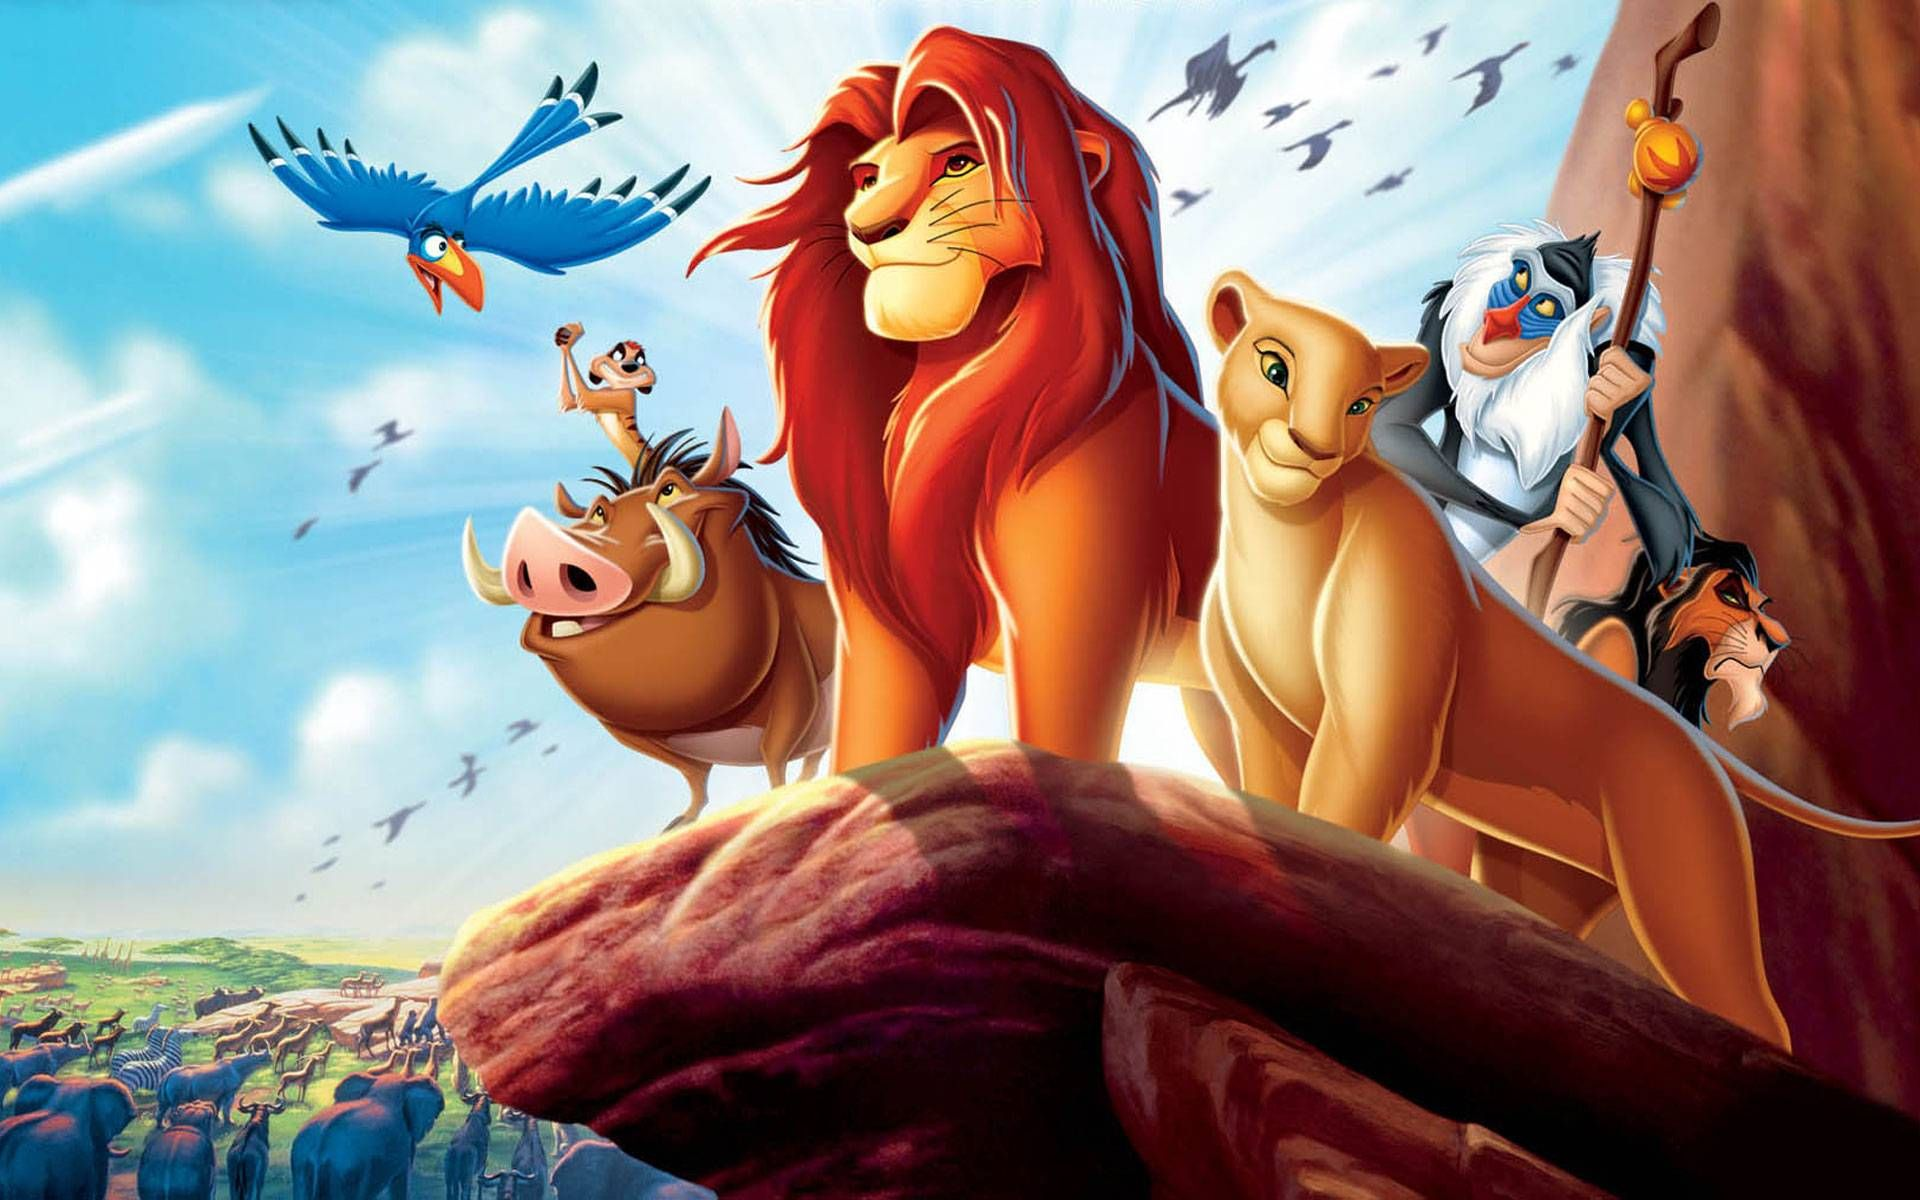 The Lion King 1994 Some Time Later The Animals Of The Pride Lands Gather Once Again At Pride Rock Cheering At Simba And Nala As They Overlook The Disney Songs